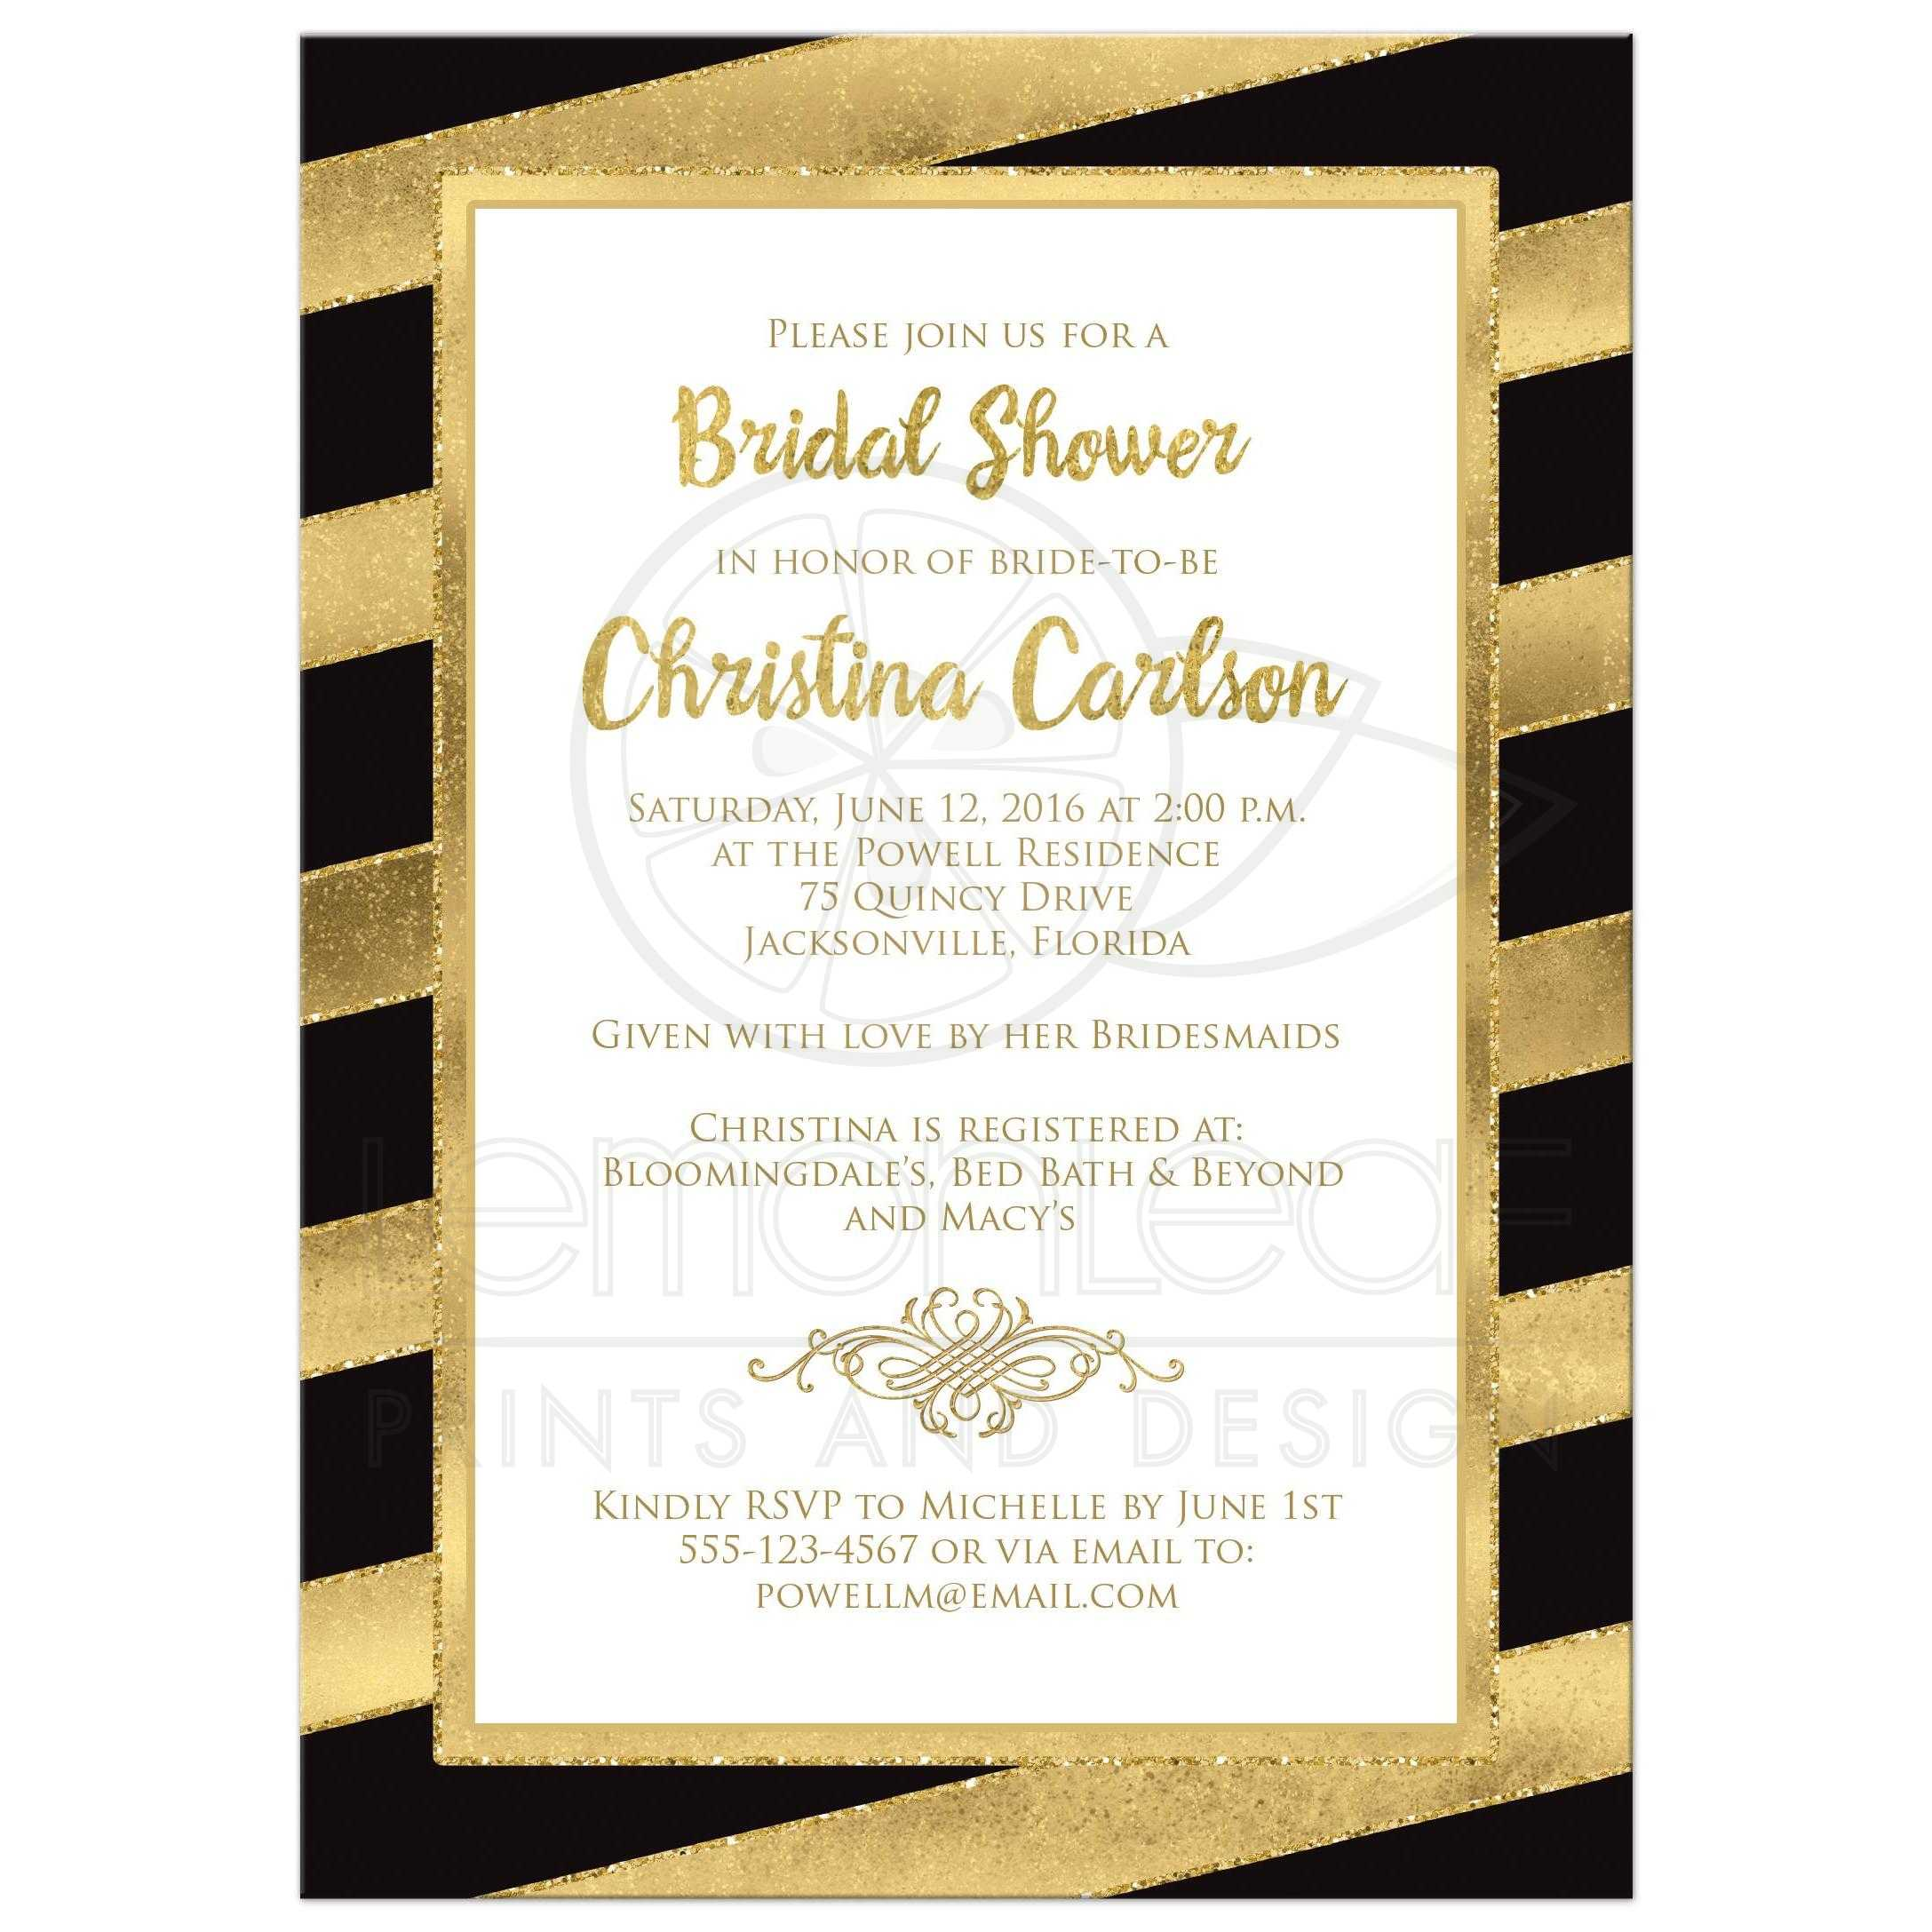 Bridal shower invitation black gold stripes faux glitter best black white and gold foil and gold glitter striped bridal shower filmwisefo